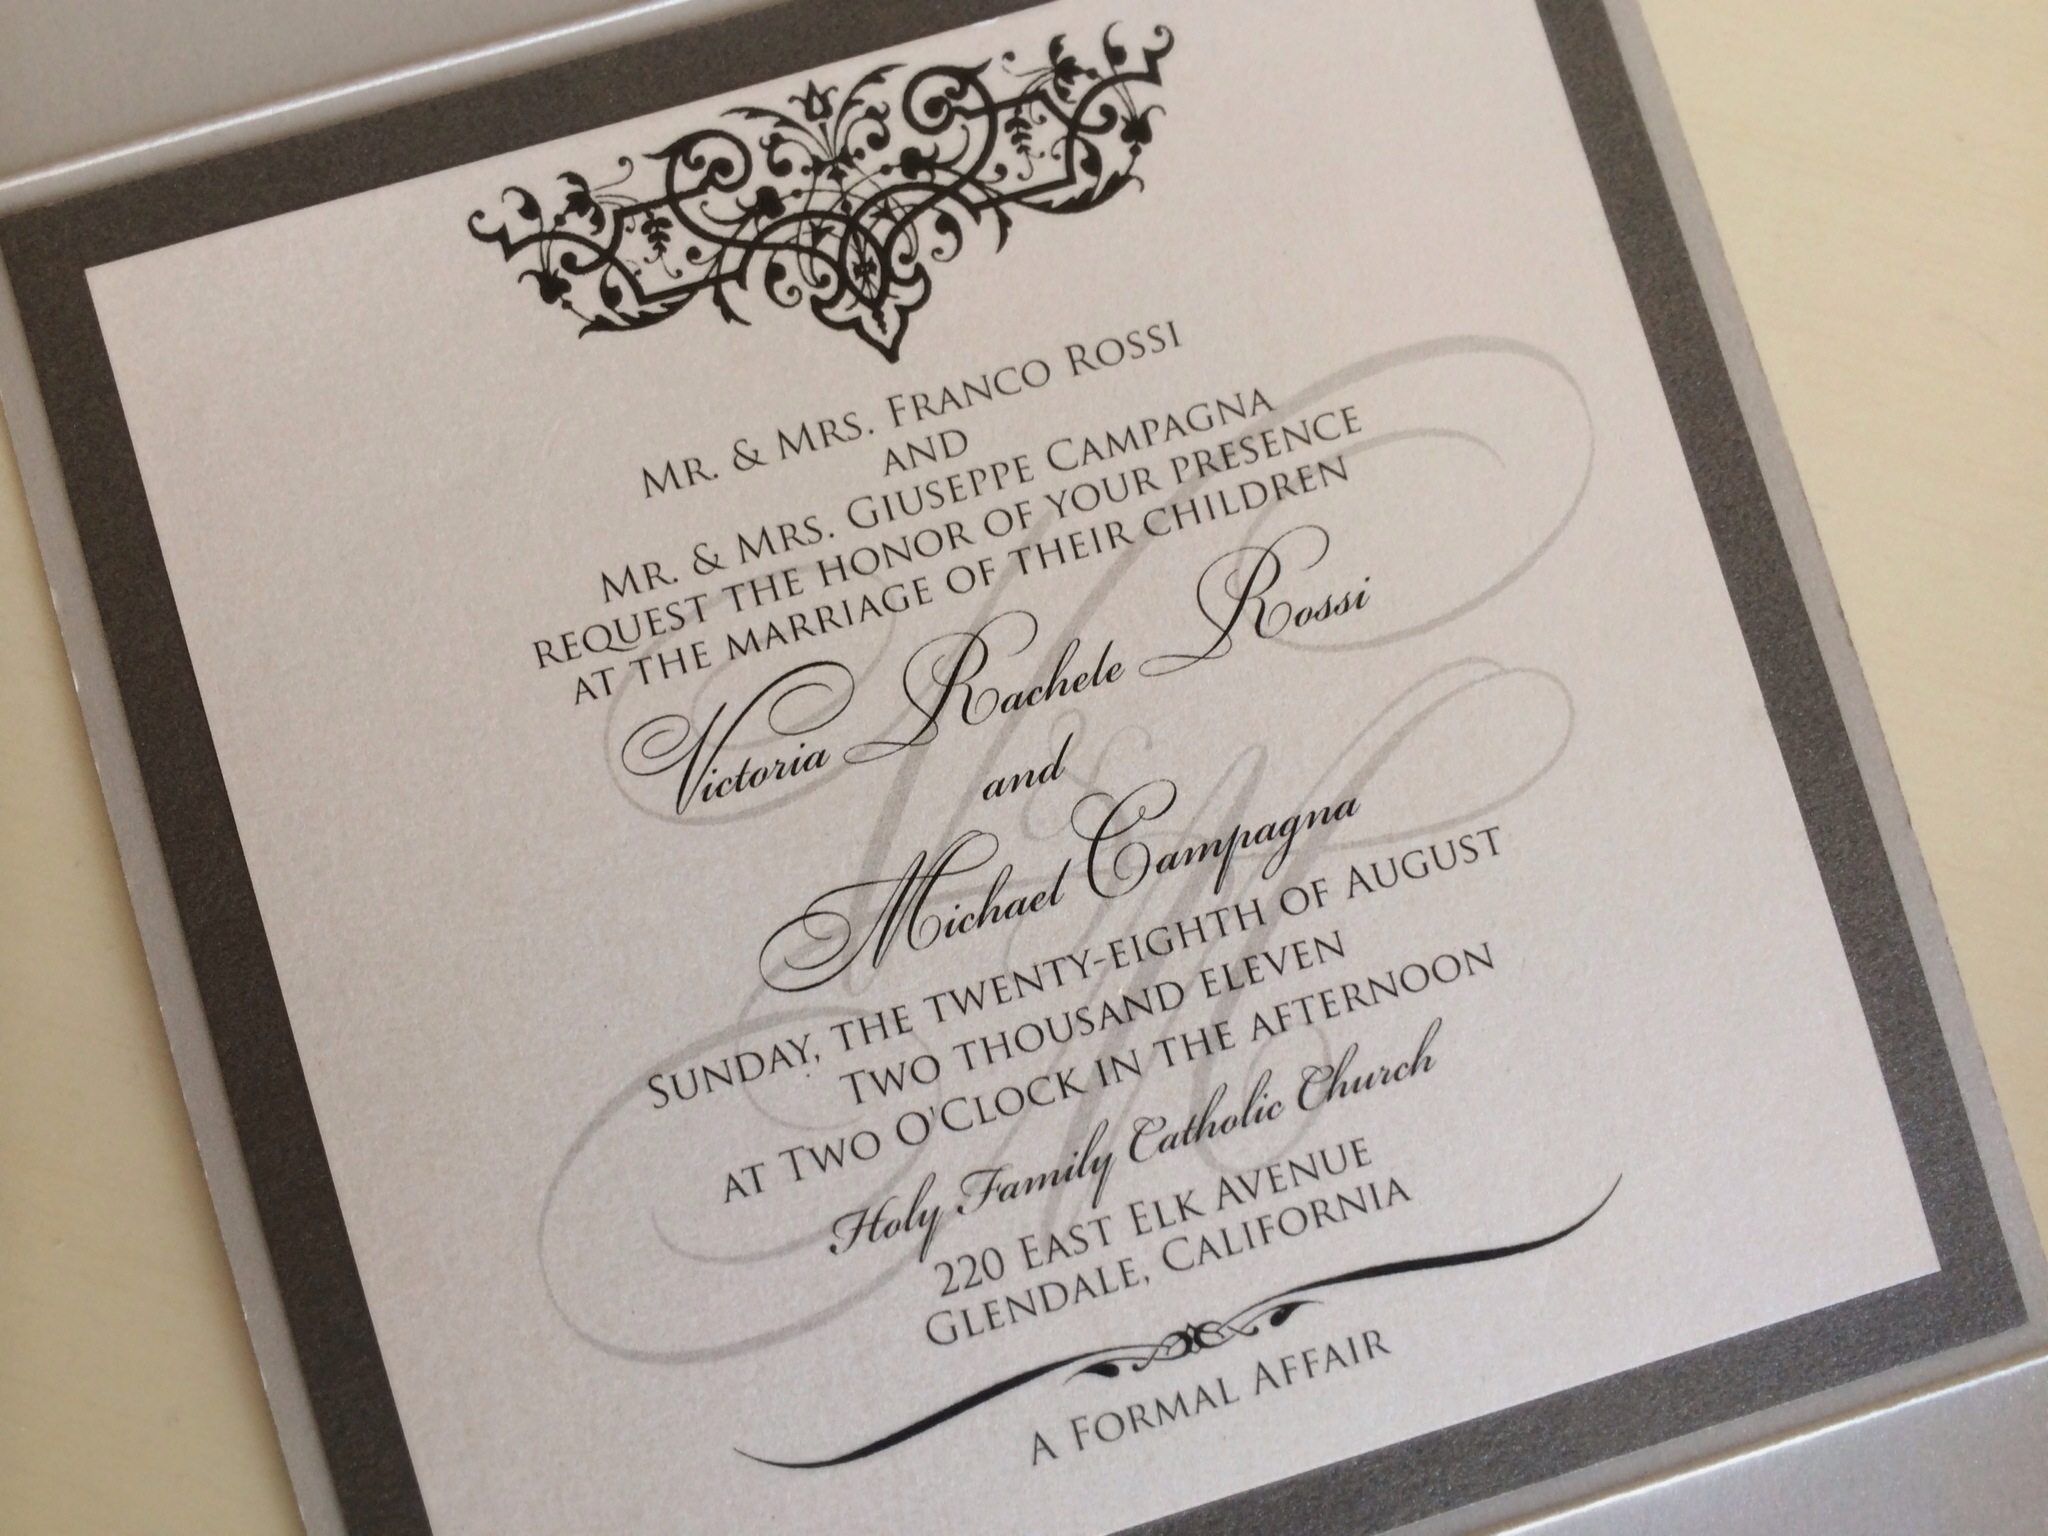 Wedding Invitation Workding: Invitation Etiquette Part 2: Who To Invite And Do You